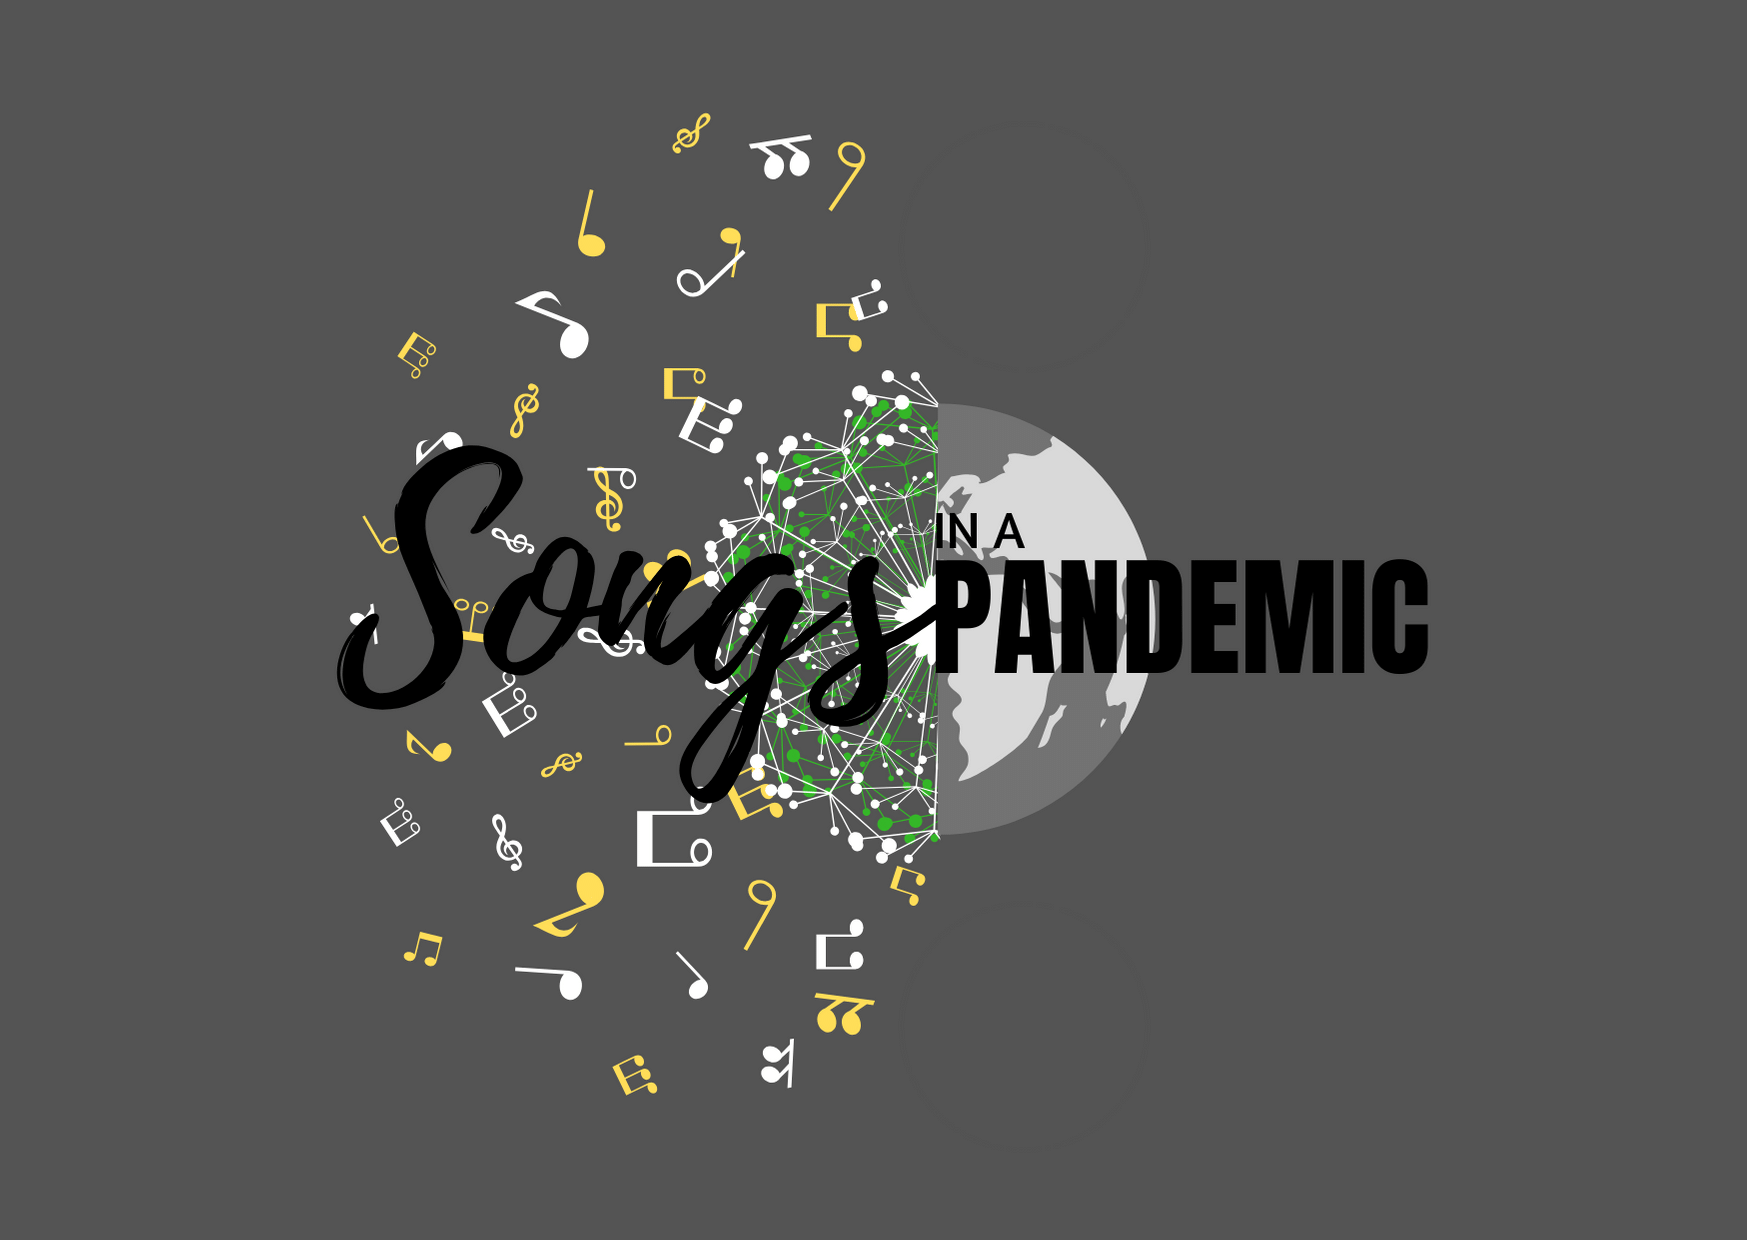 Songs in a Pandemic - Part 3, Be Still My Soul